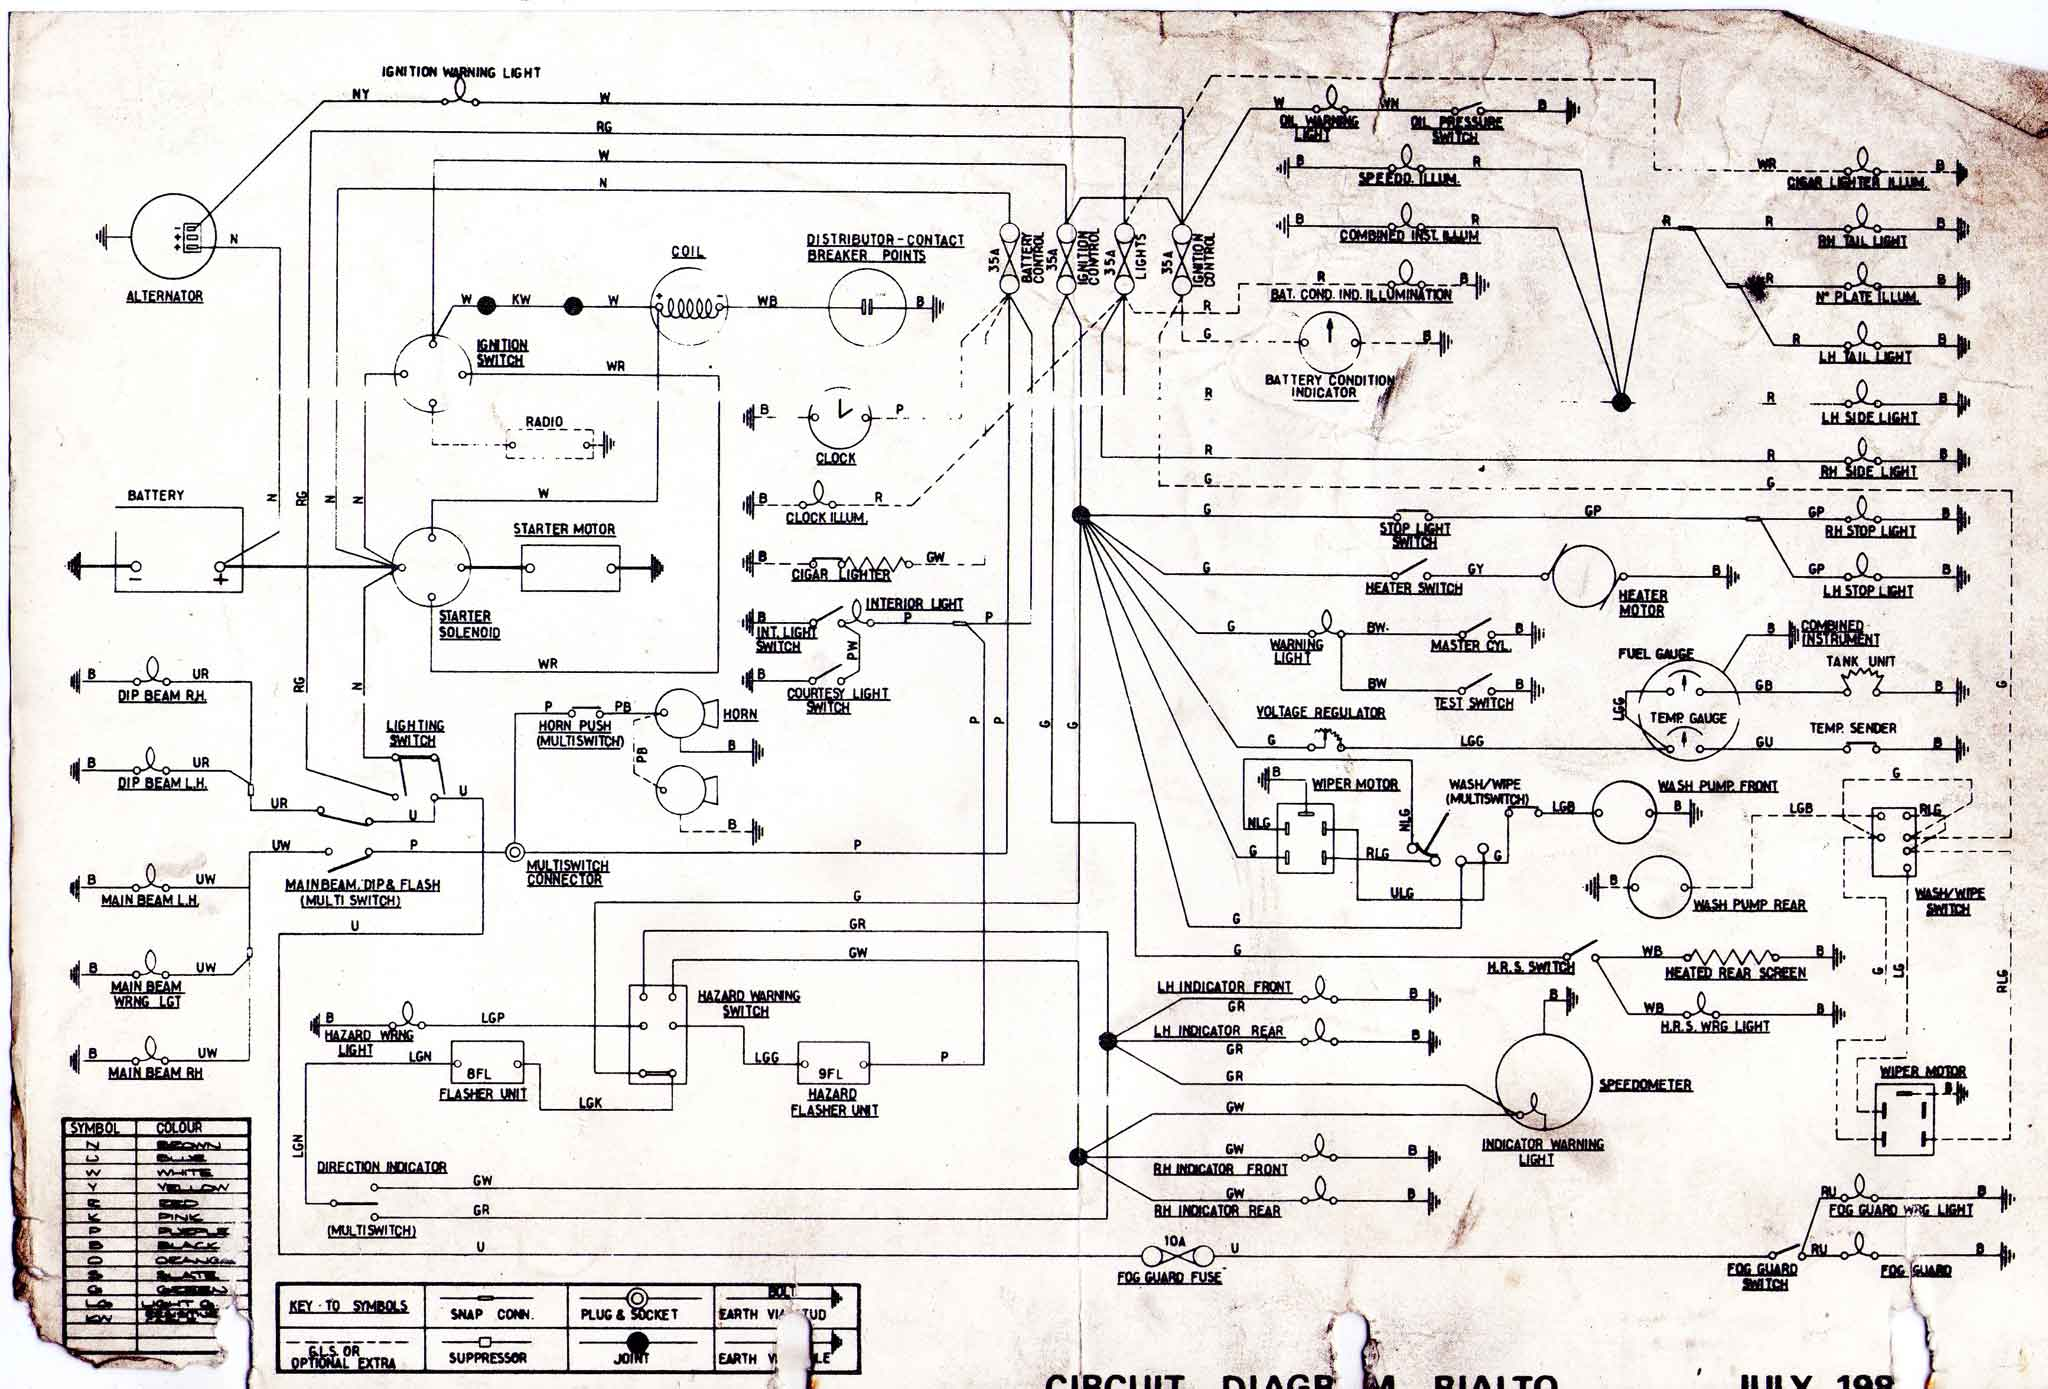 Regal Wiring Diagram - basic electrical wiring theory on